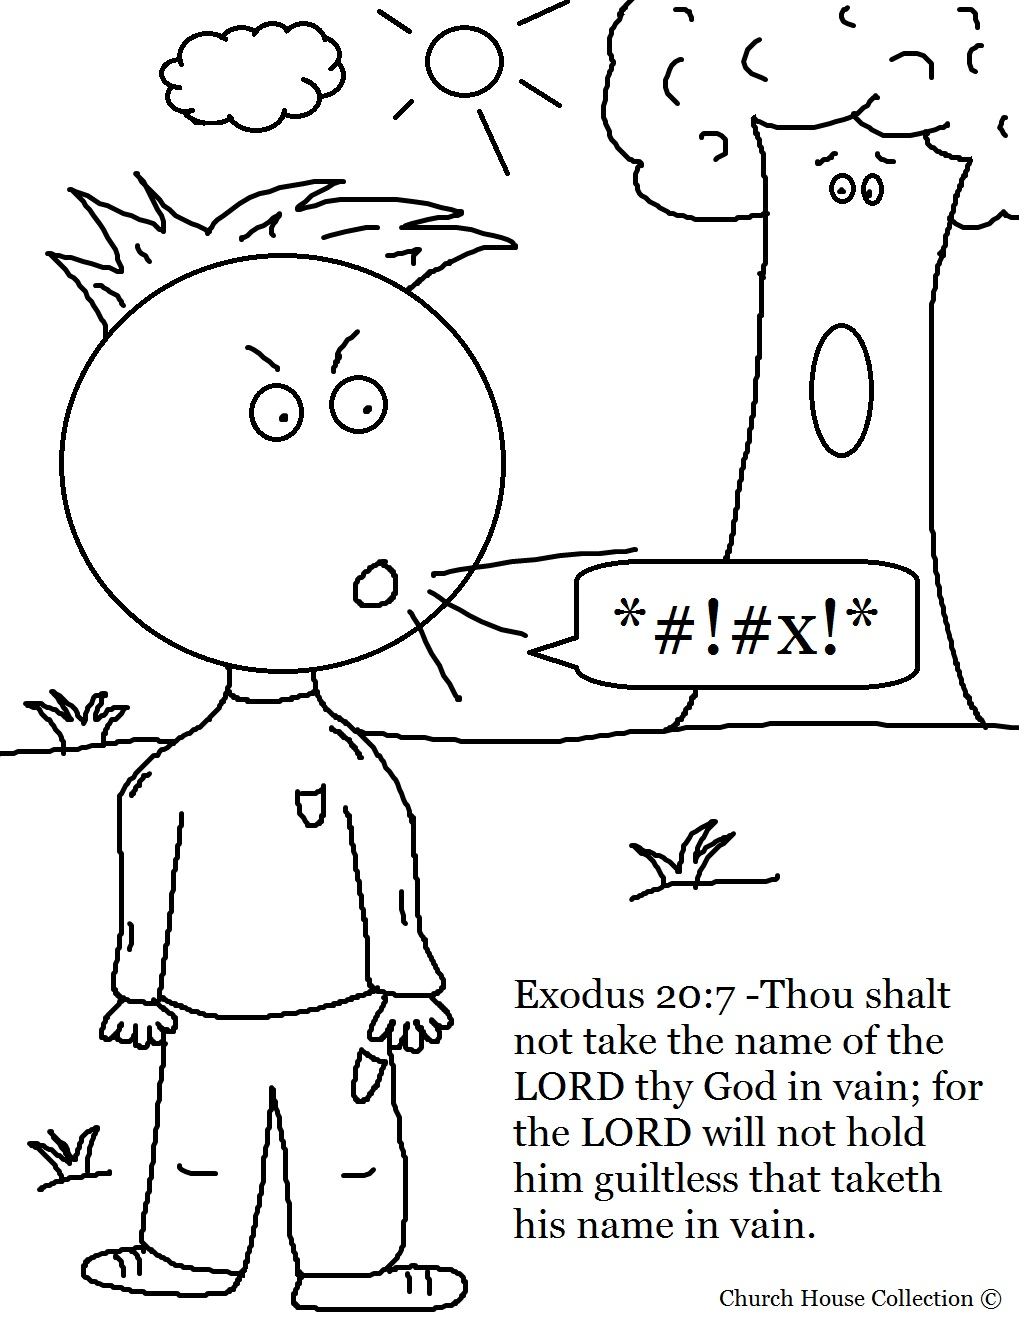 Coloring page x marks the spot - Coloring Page X Marks The Spot Coloring Page X Marks The Spot Coloring Page X